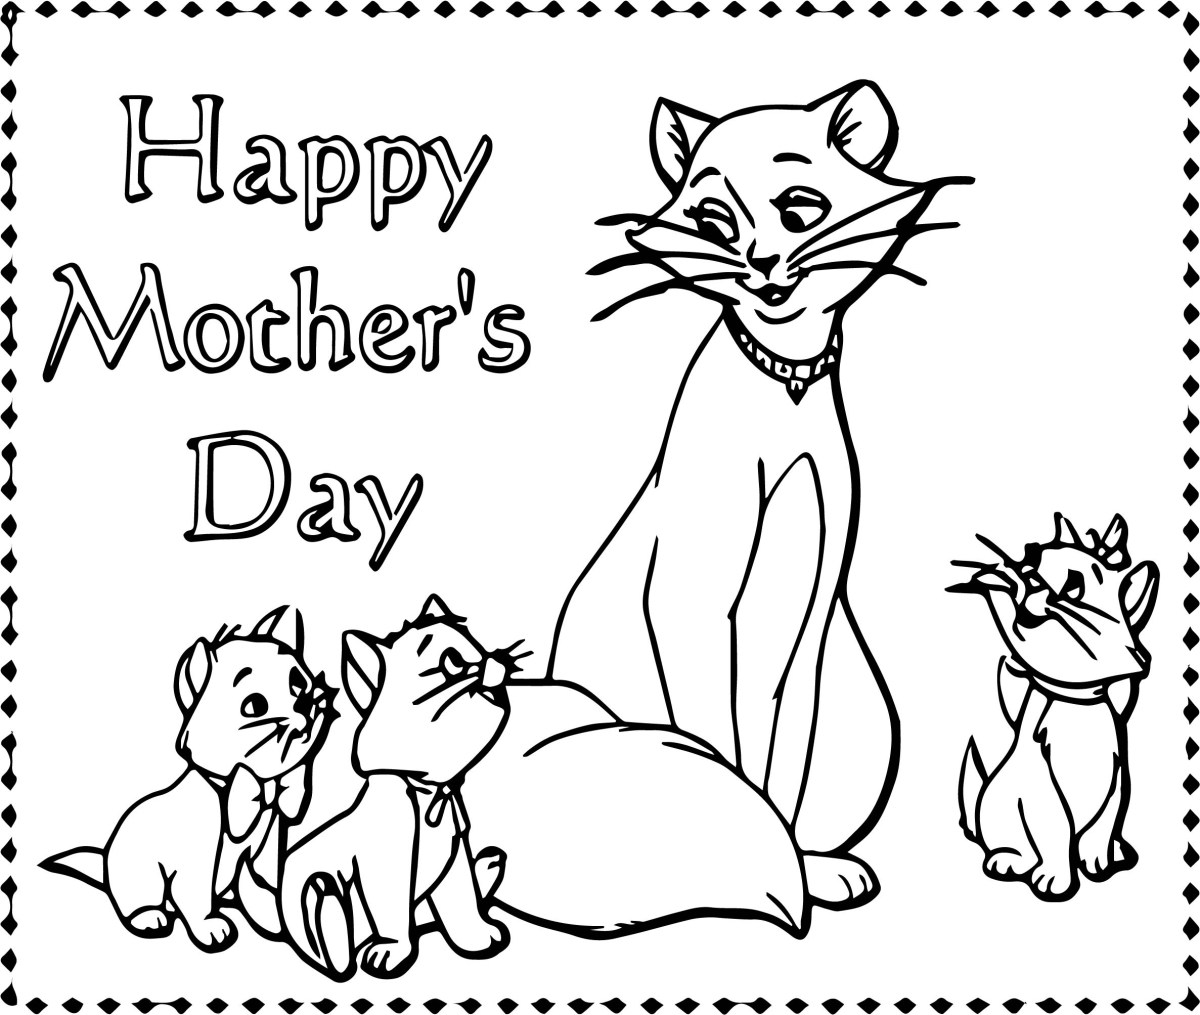 Happy Mothers Day Coloring Pages Disney The Aristocats Happy